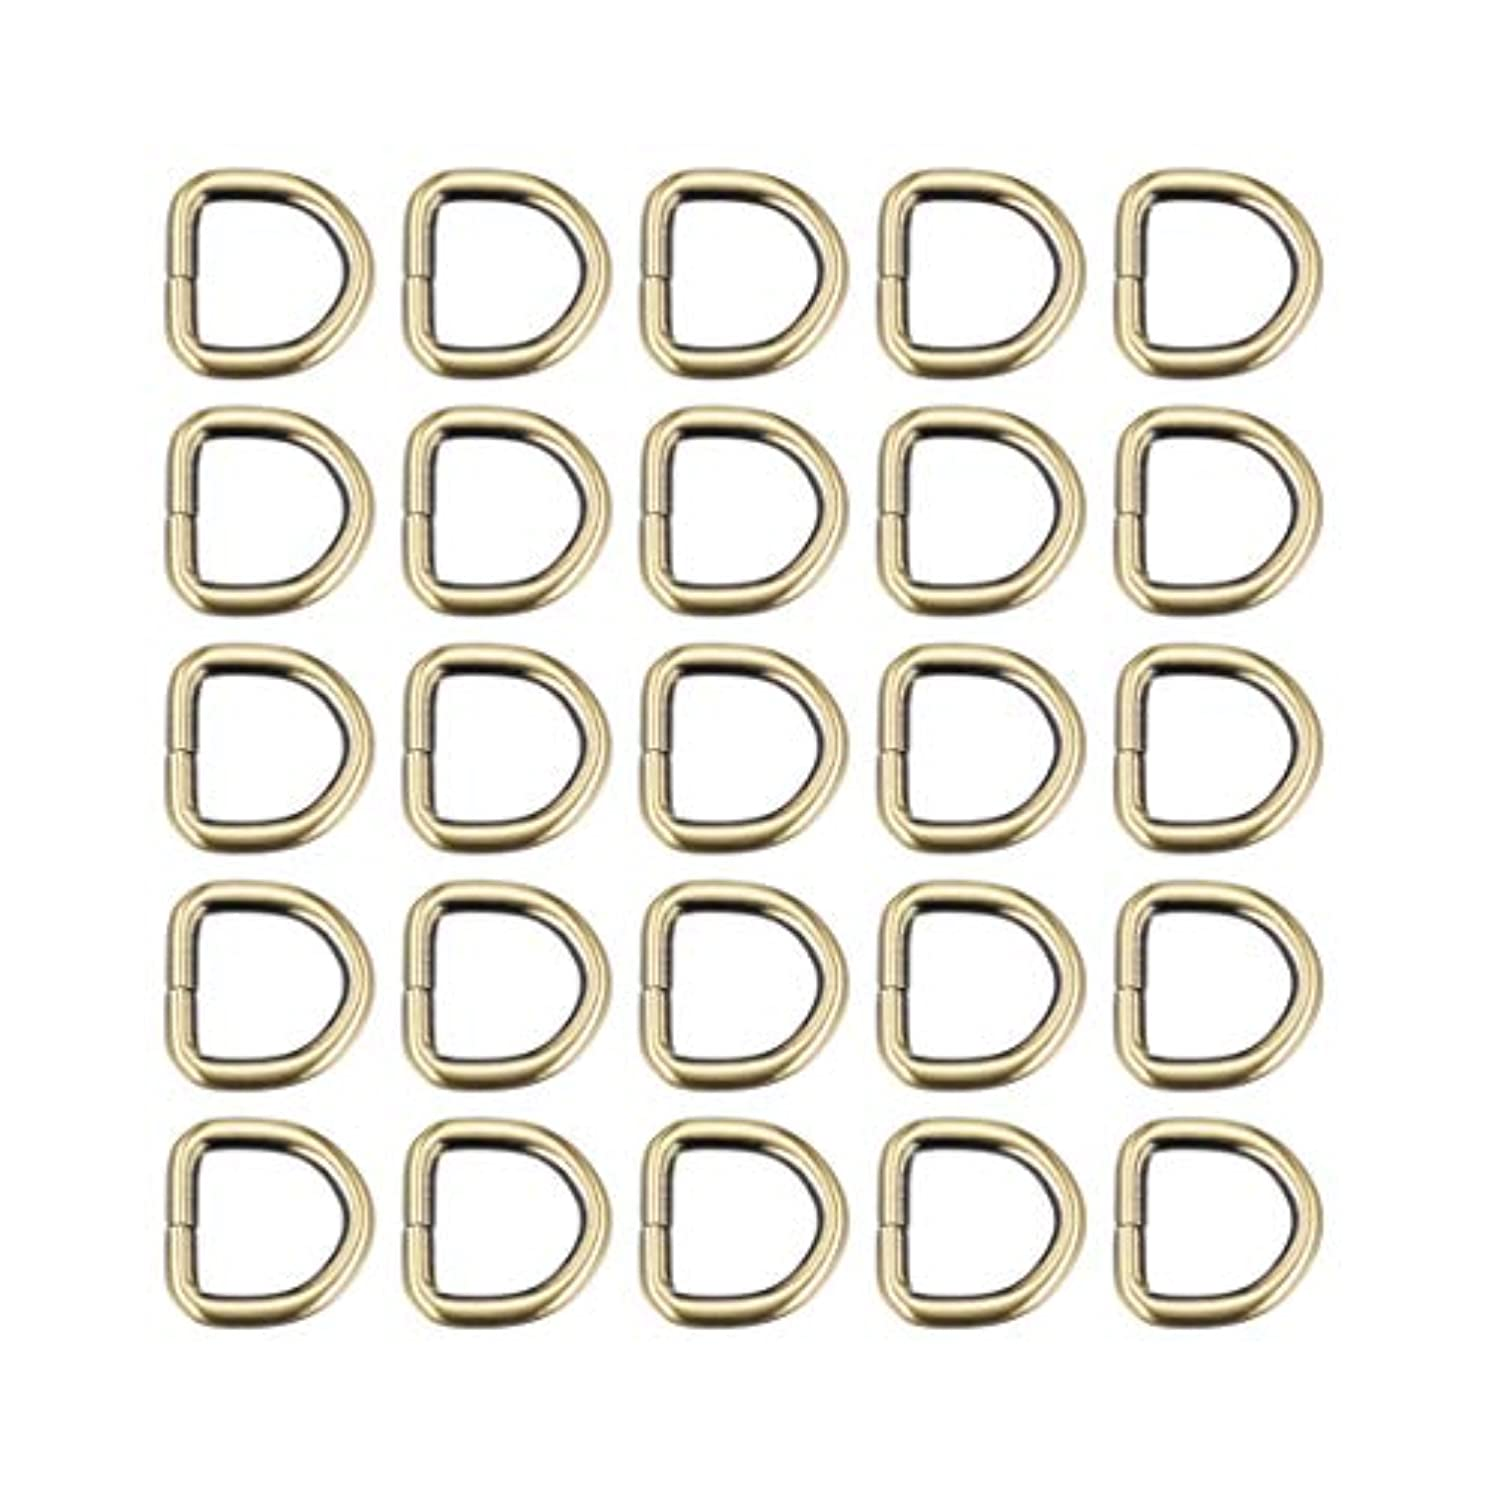 uxcell 25 Pcs D Ring Buckle 0.8 Inch Metal Semi-Circular D-Rings Bronze Tone for Hardware Bags Belts Craft DIY Accessories